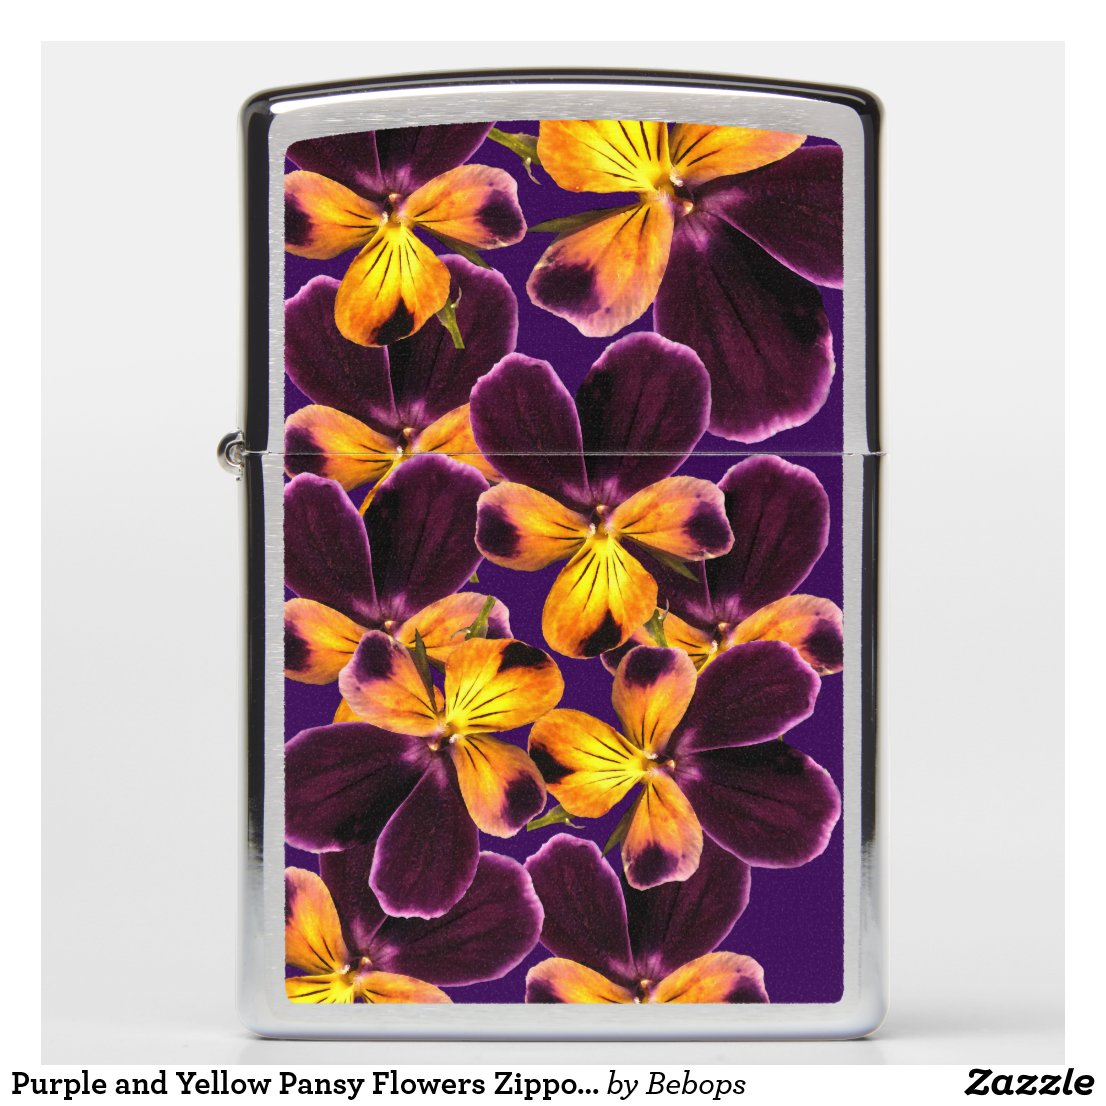 Purple and Yellow Pansy Flowers Zippo Lighter